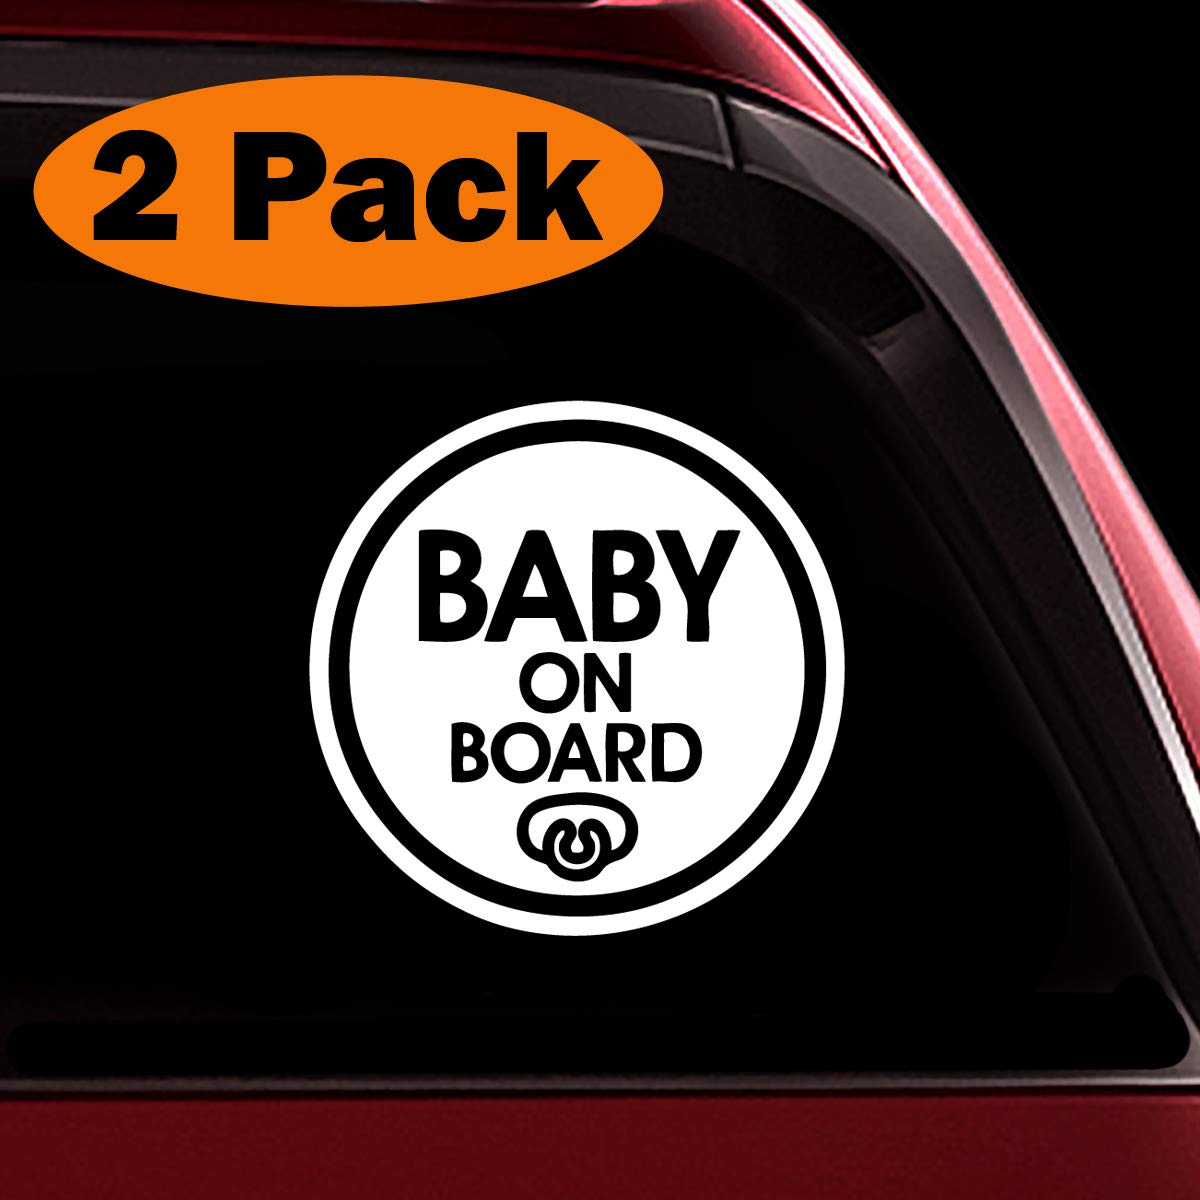 Set of 2 Safety Caution Decal Sign Stickers for Cars Windows Bumpers TOTOMO Baby on Board Sticker - Baby Pacifier ALI-029